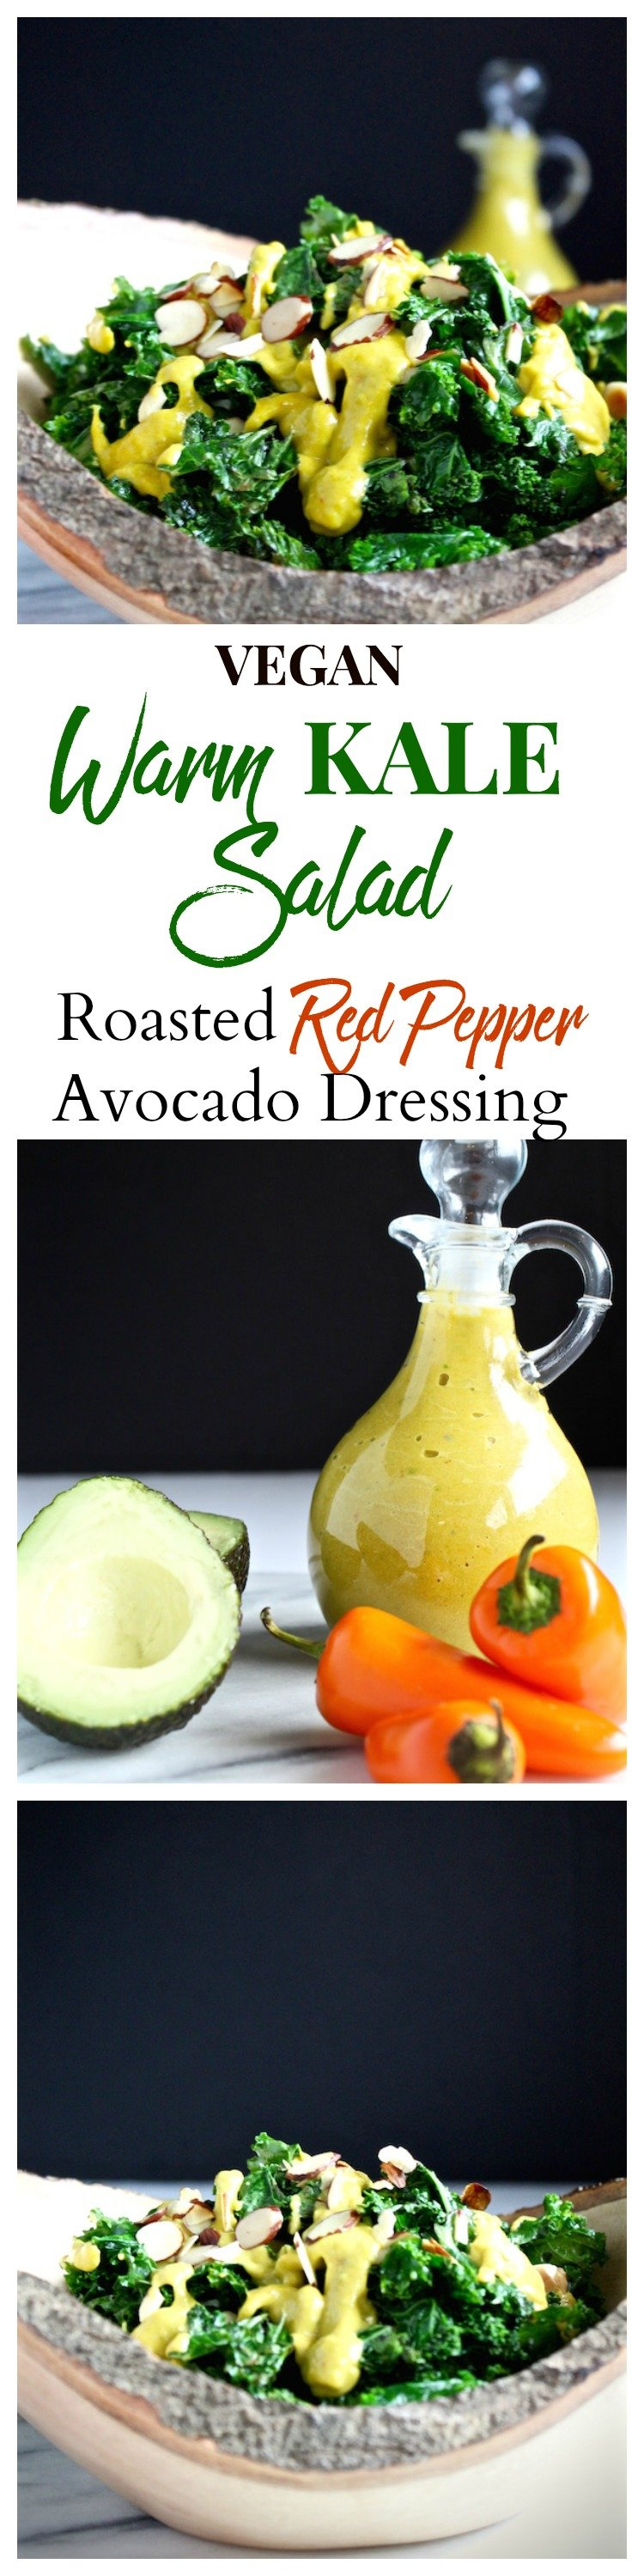 warm kale salad roasted red pepper dressing pinterest